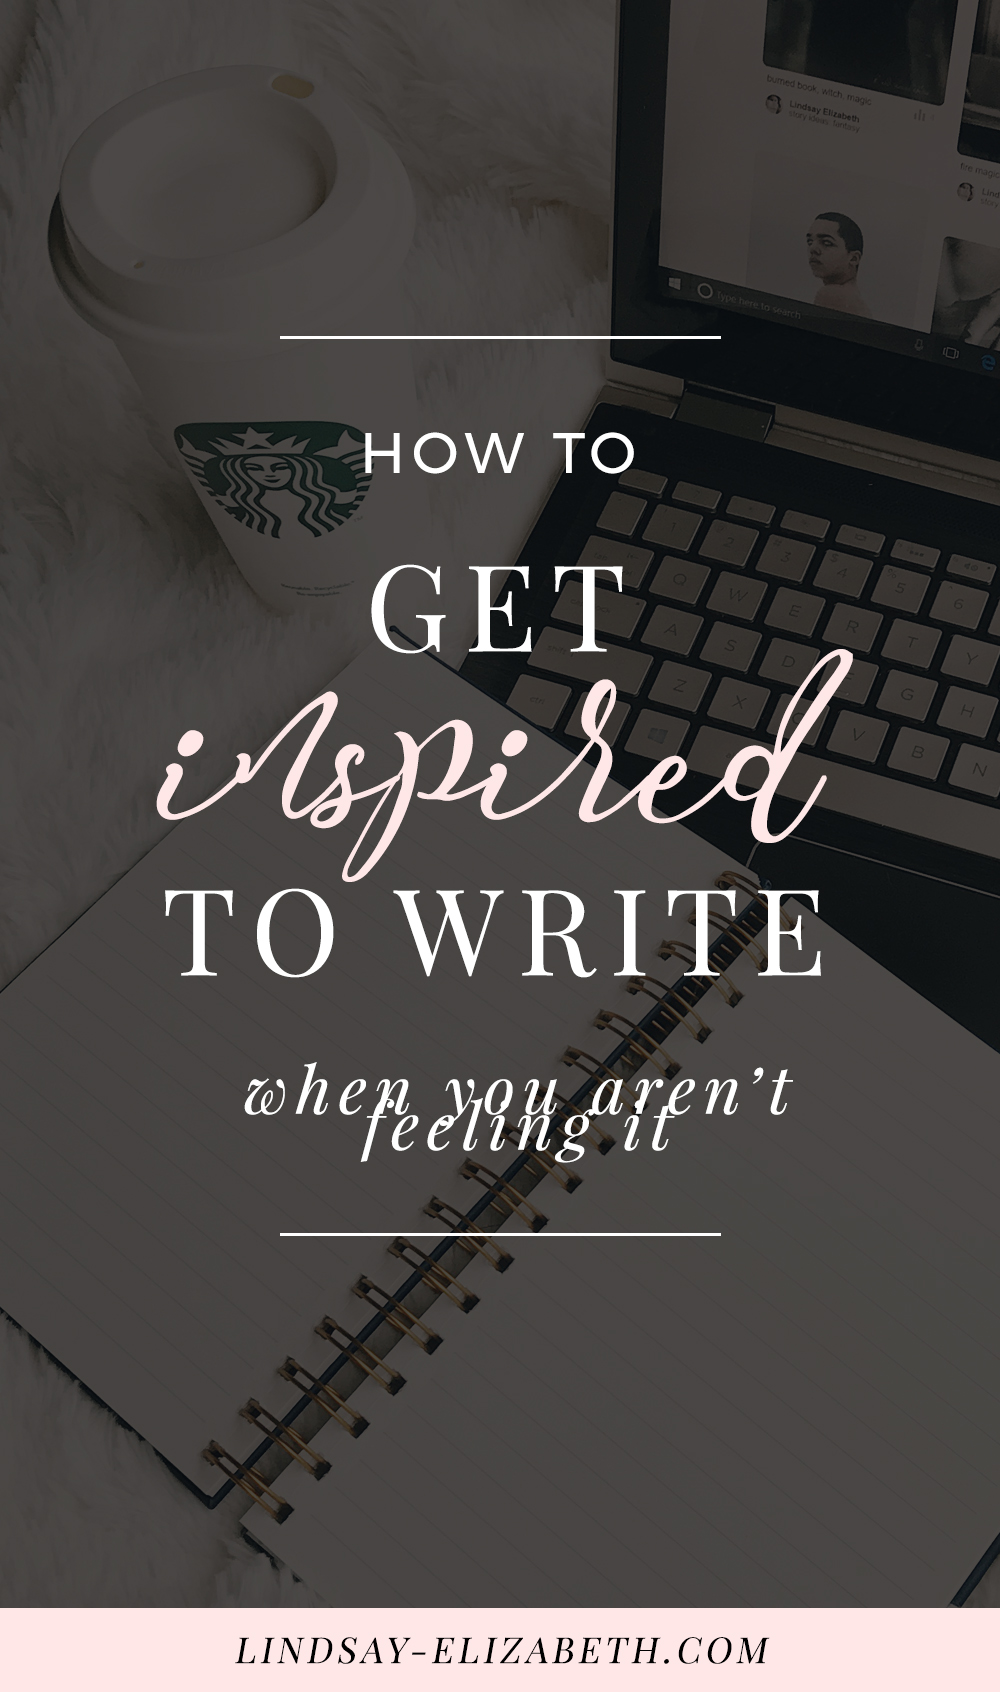 Are you dying to write but can't seem to find any inspiration? Don't worry, you're not alone. Try these easy remedies for writers to get your inspiration flowing again.